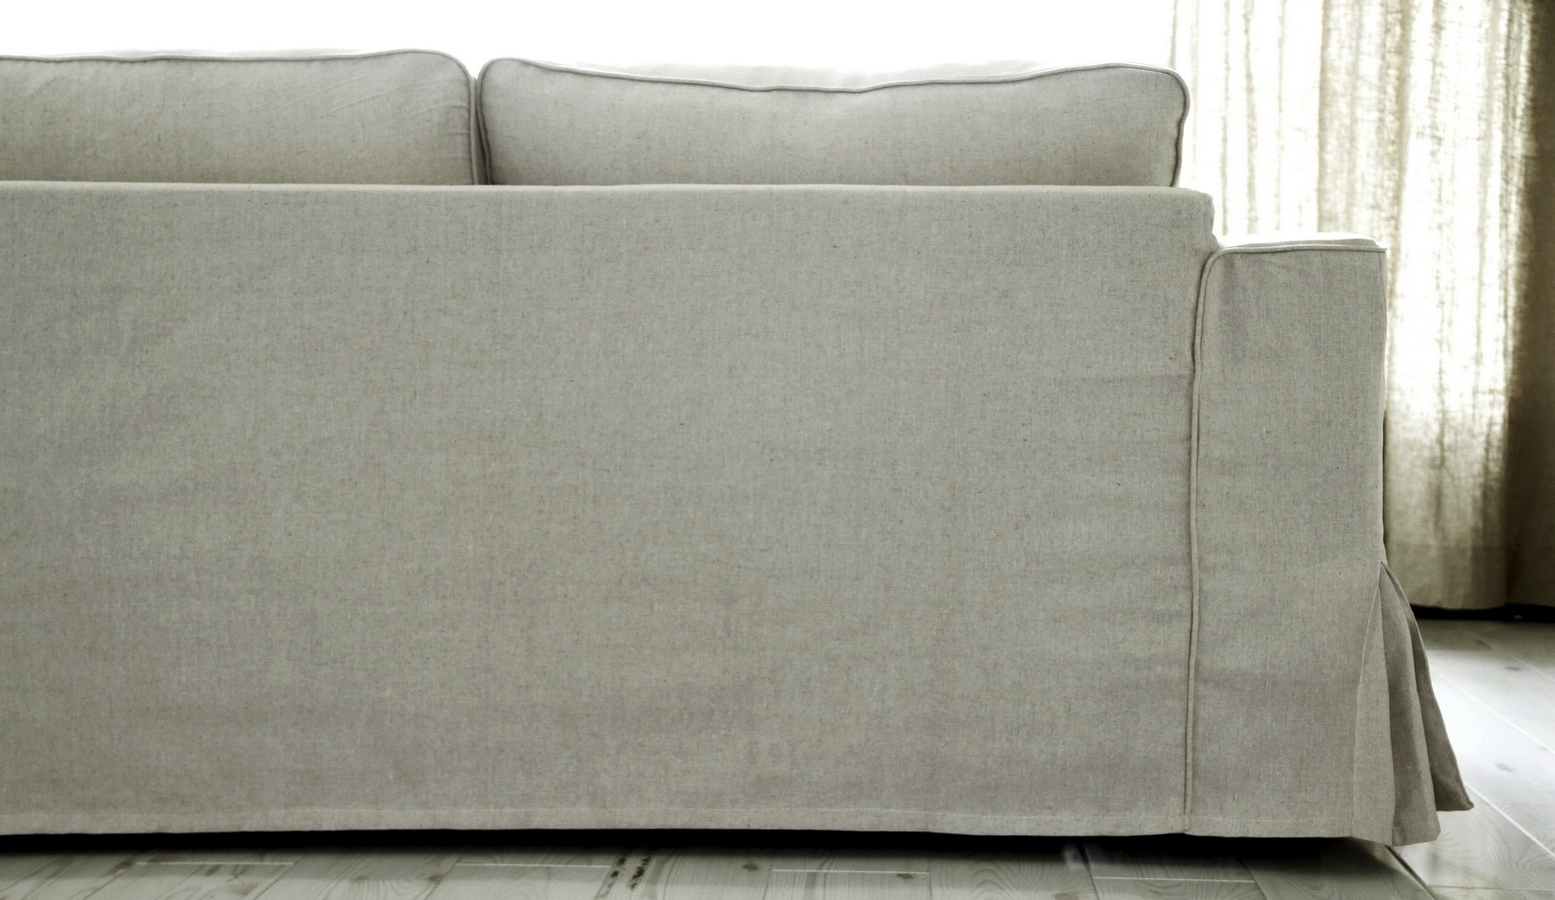 Loose Fit Linen Manstad Sofa Slipcovers Now Available With Regard To Well Known Manstad Sofas (View 13 of 15)